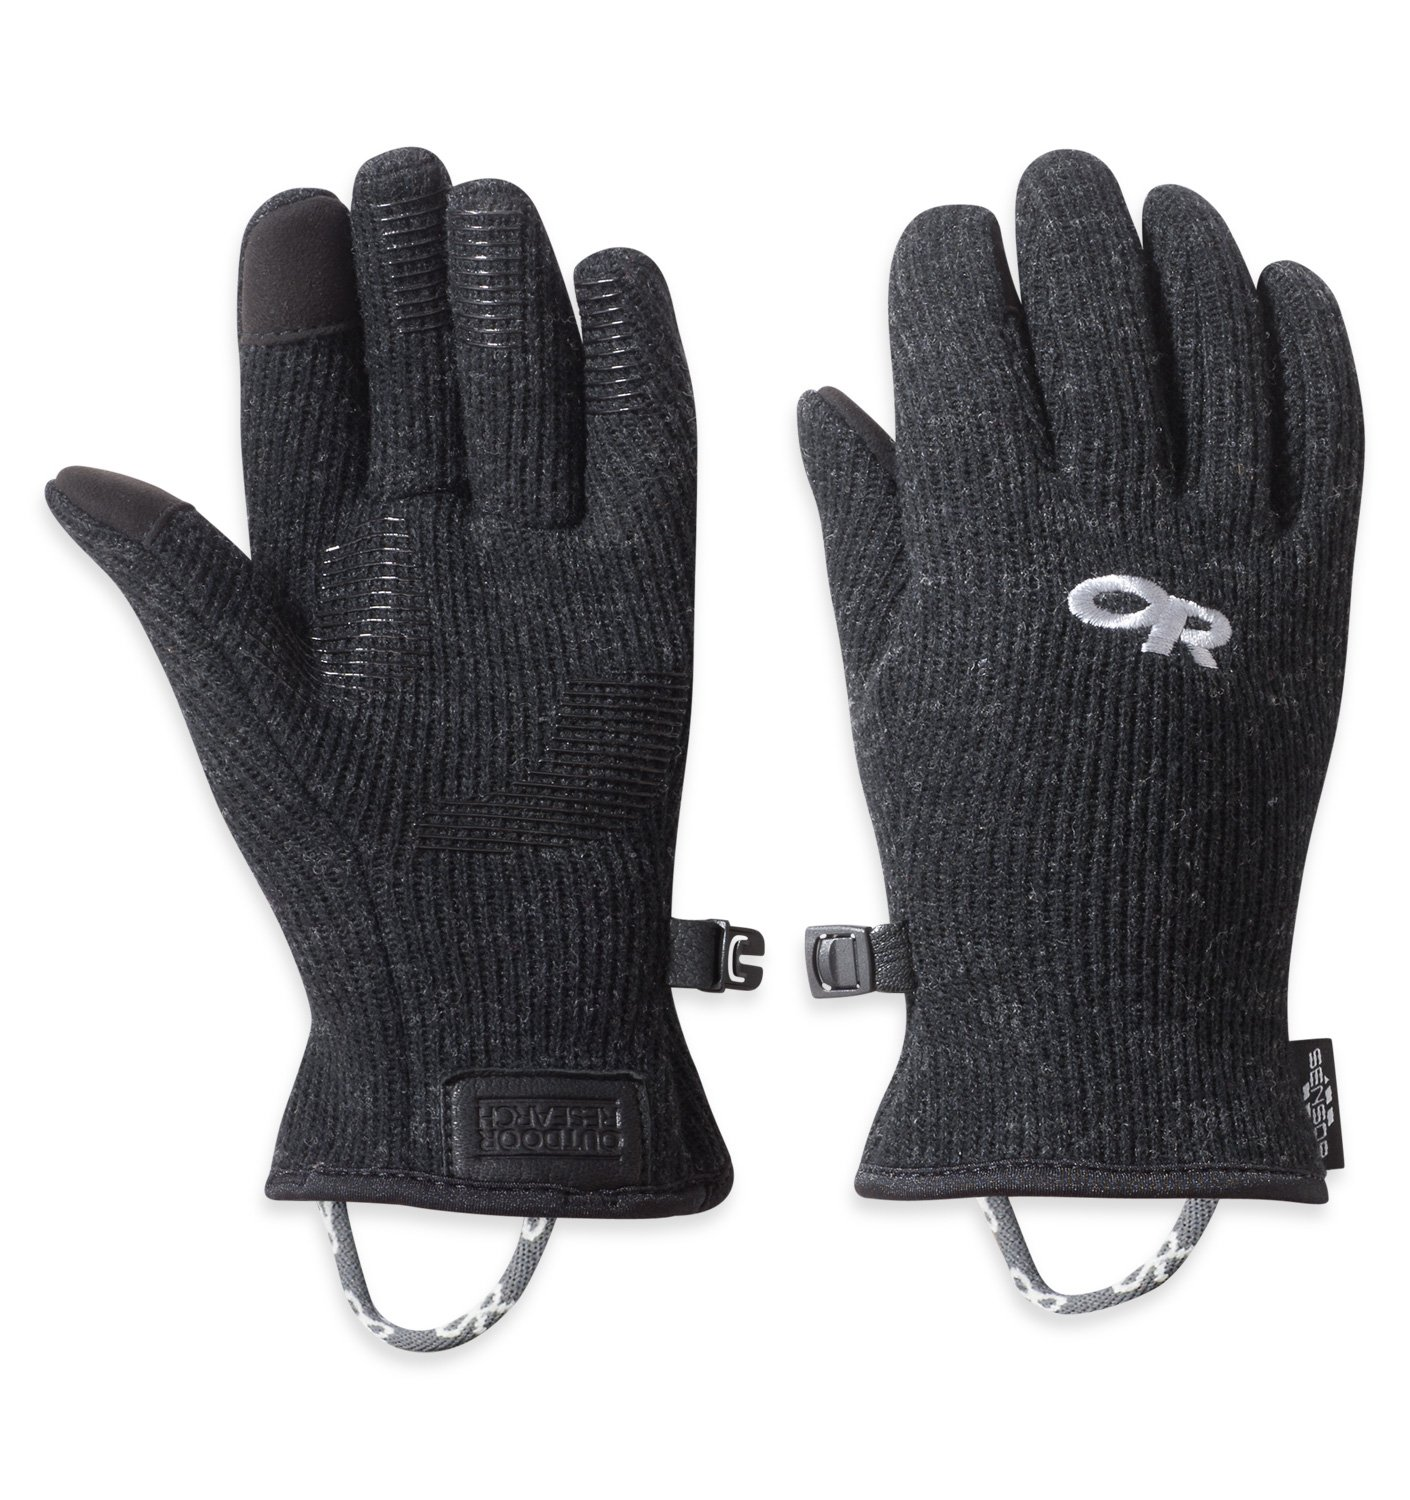 Outdoor Research Women's Flurry Sensor Gloves – Wicking, Breathable, Lightweight and Touchscreen Compatible